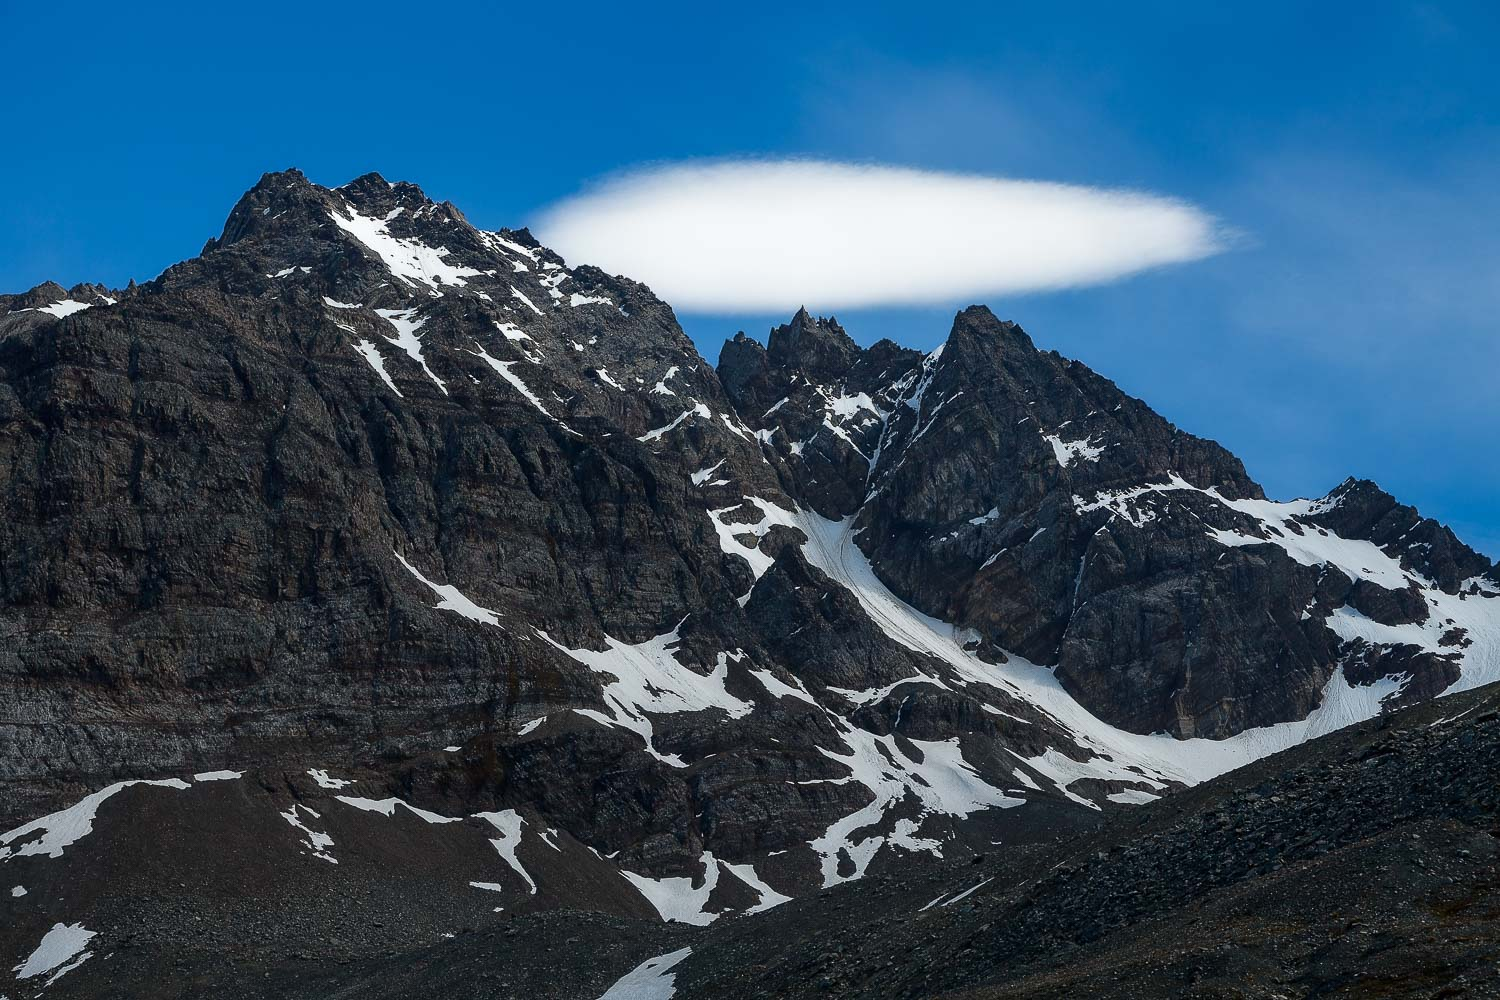 A spectacular view of a low lying cloud hovering over mountain peaks on  South Georgia, Antarctica